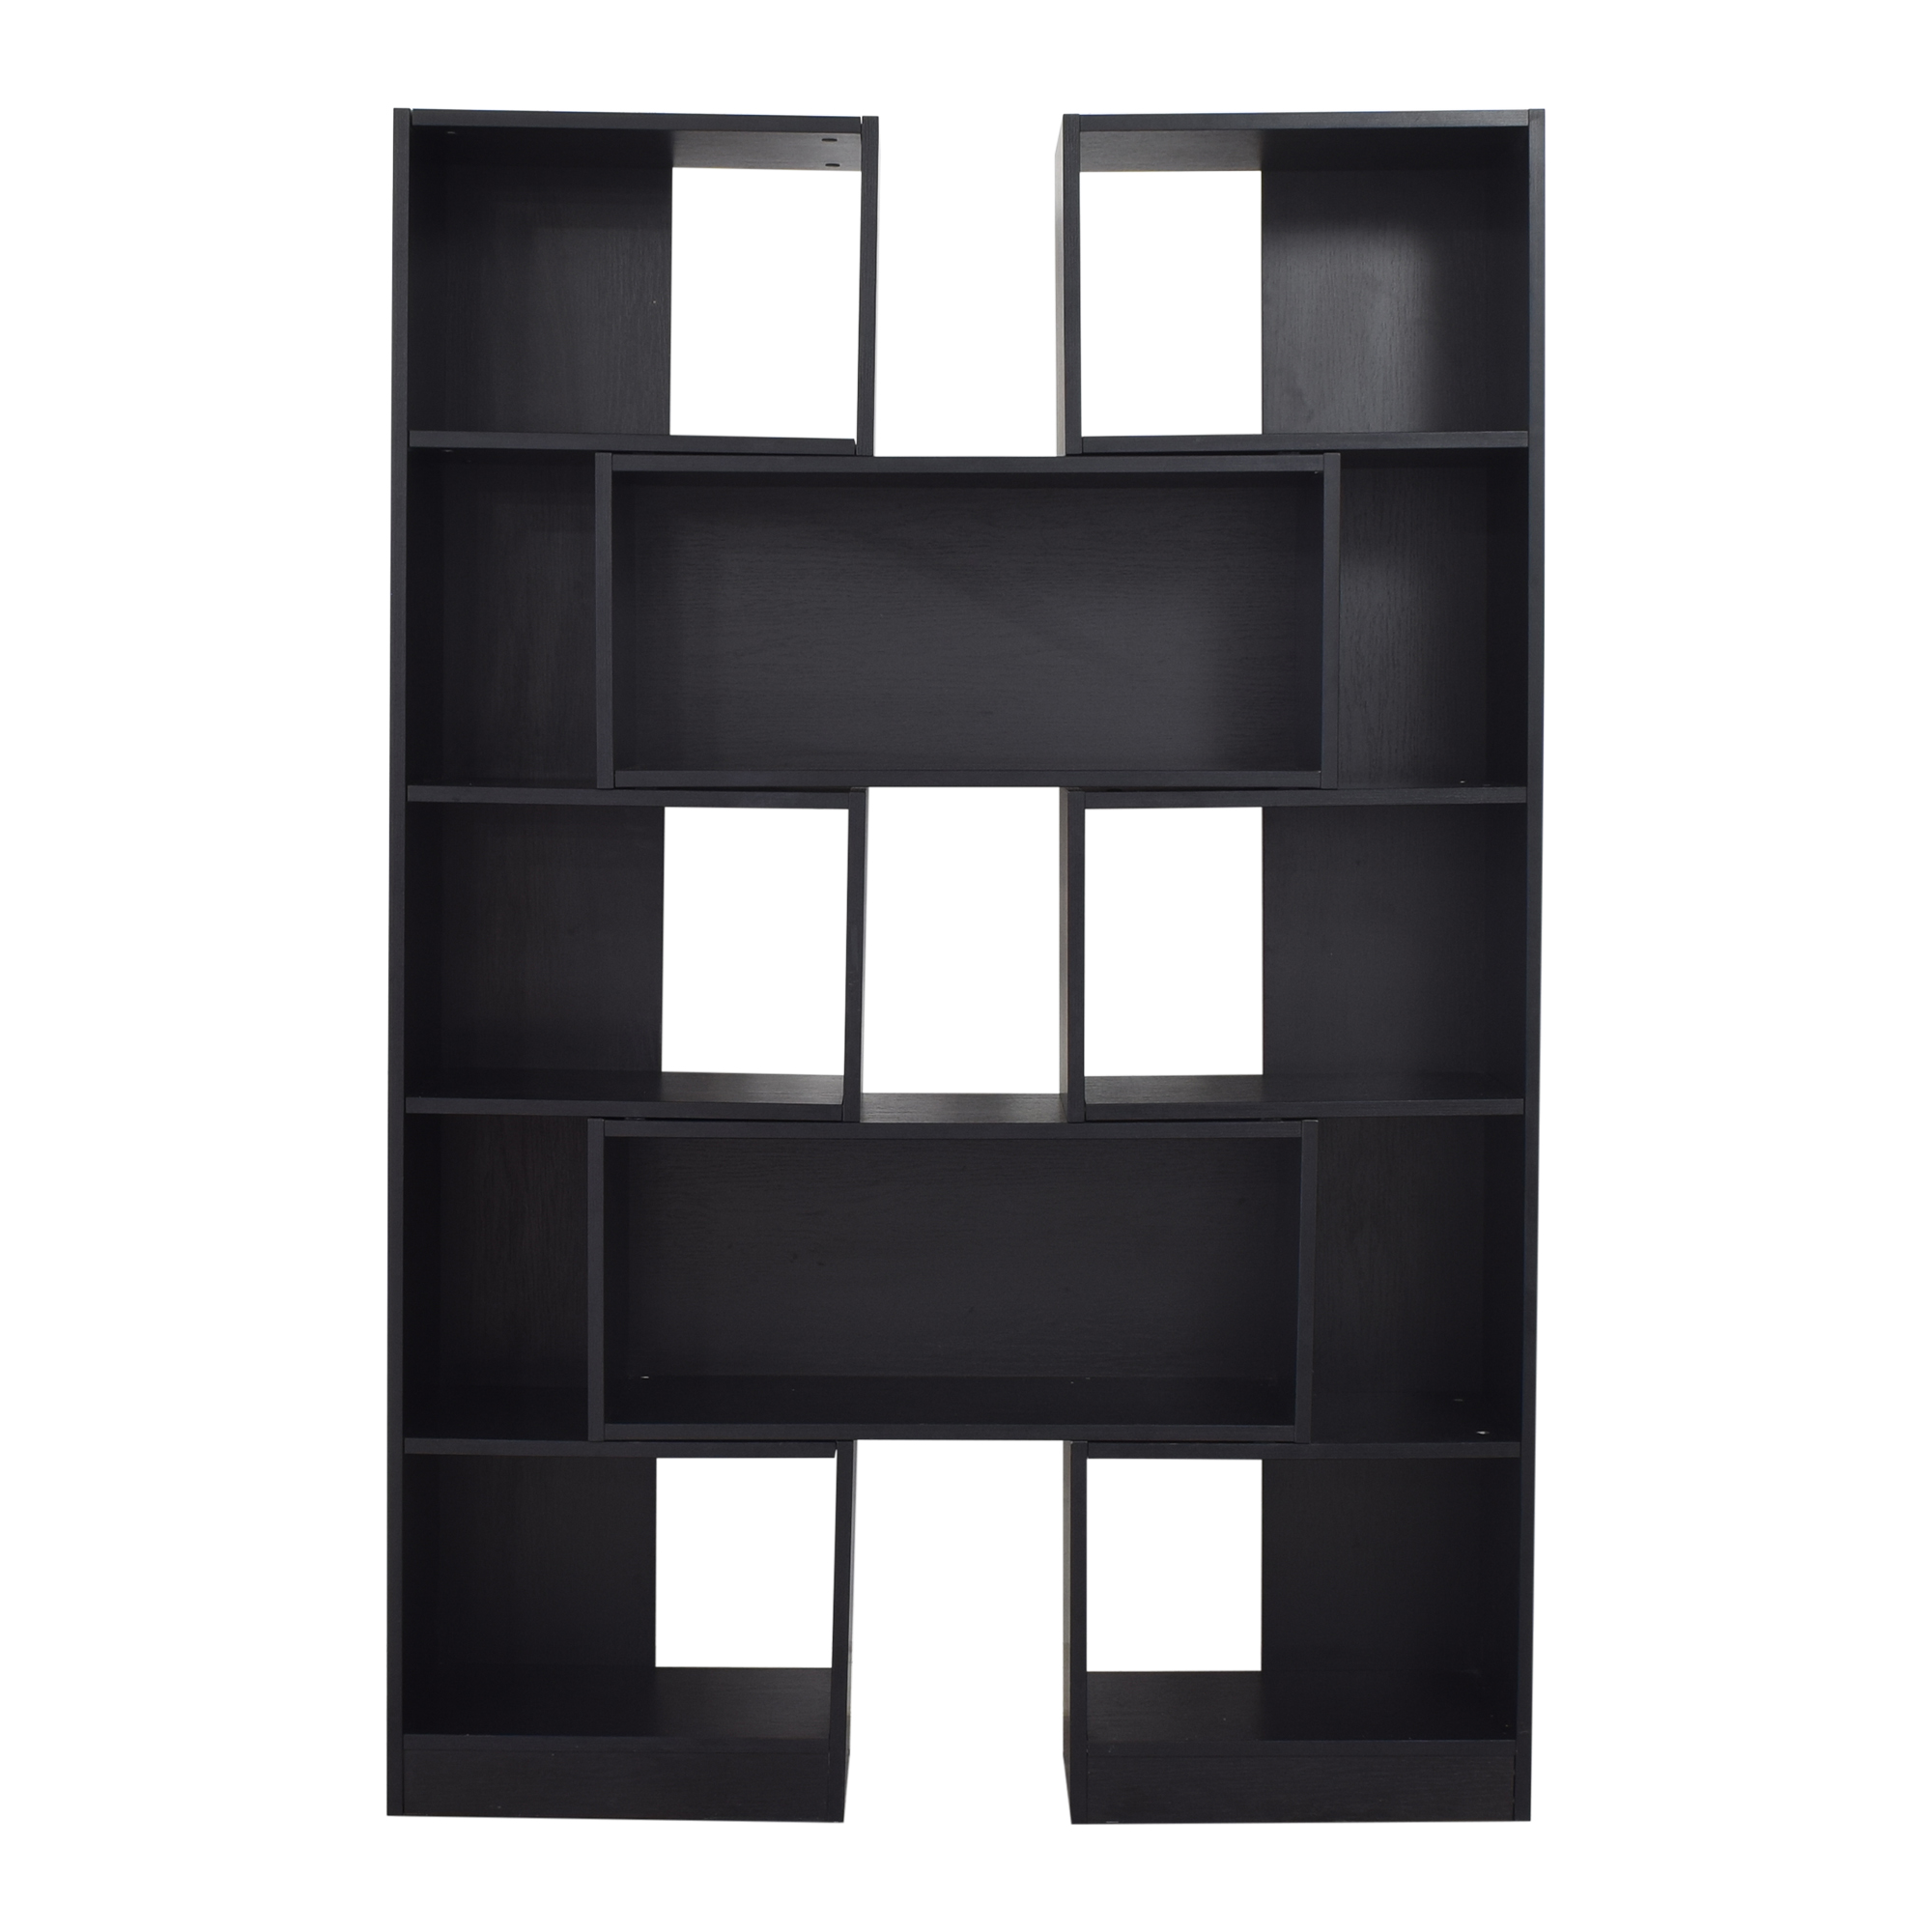 Crate & Barrel Crate & Barrel Puzzle Bookshelf ct